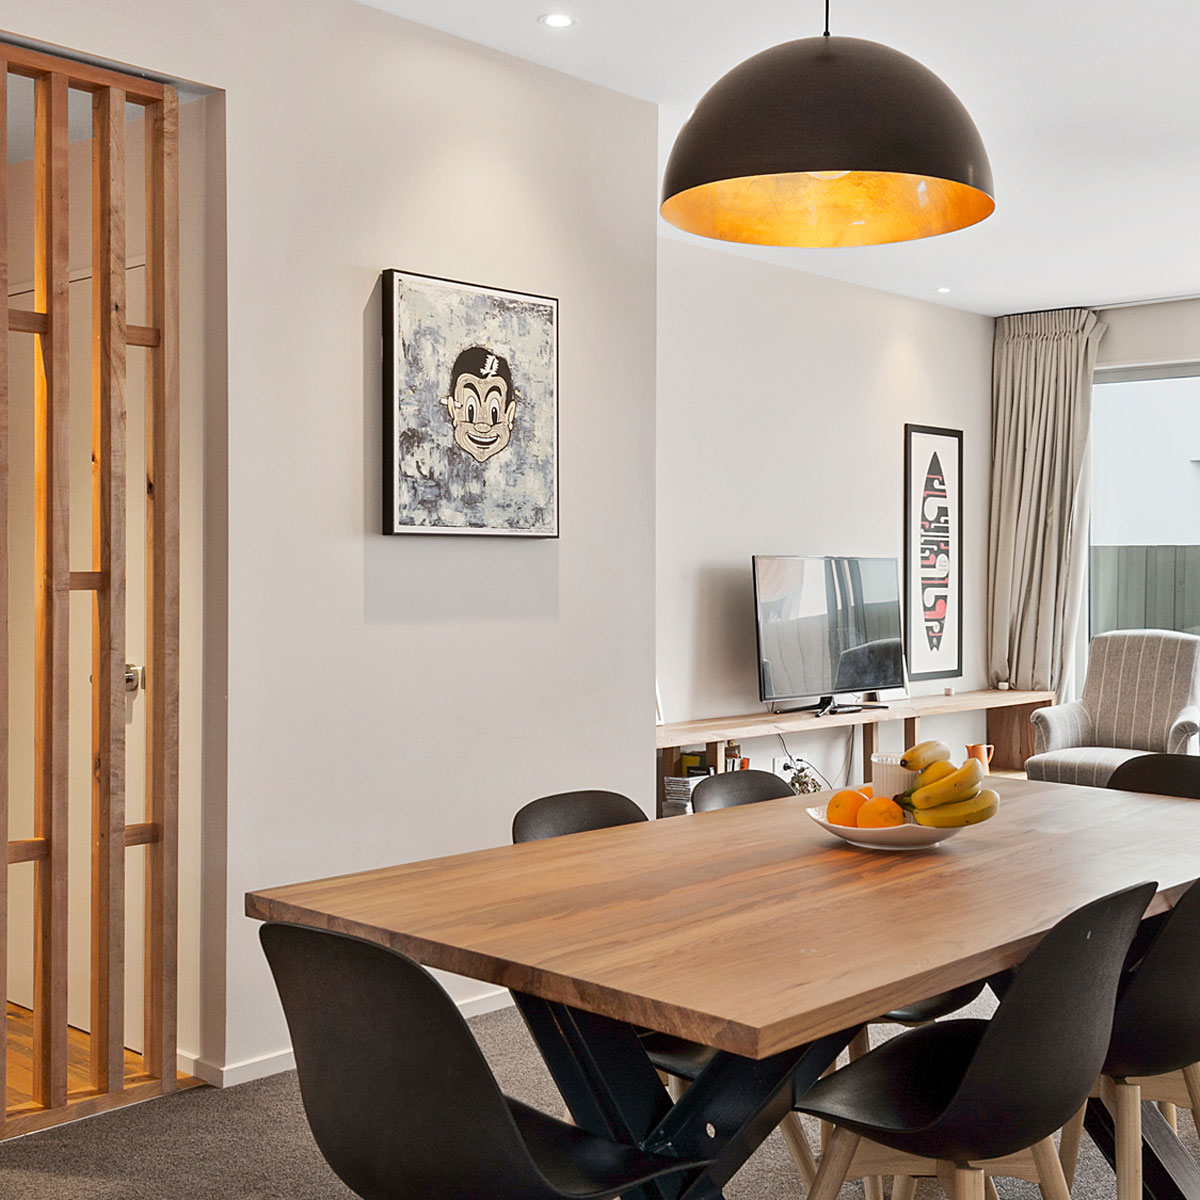 Cohesive homes can design your new home.